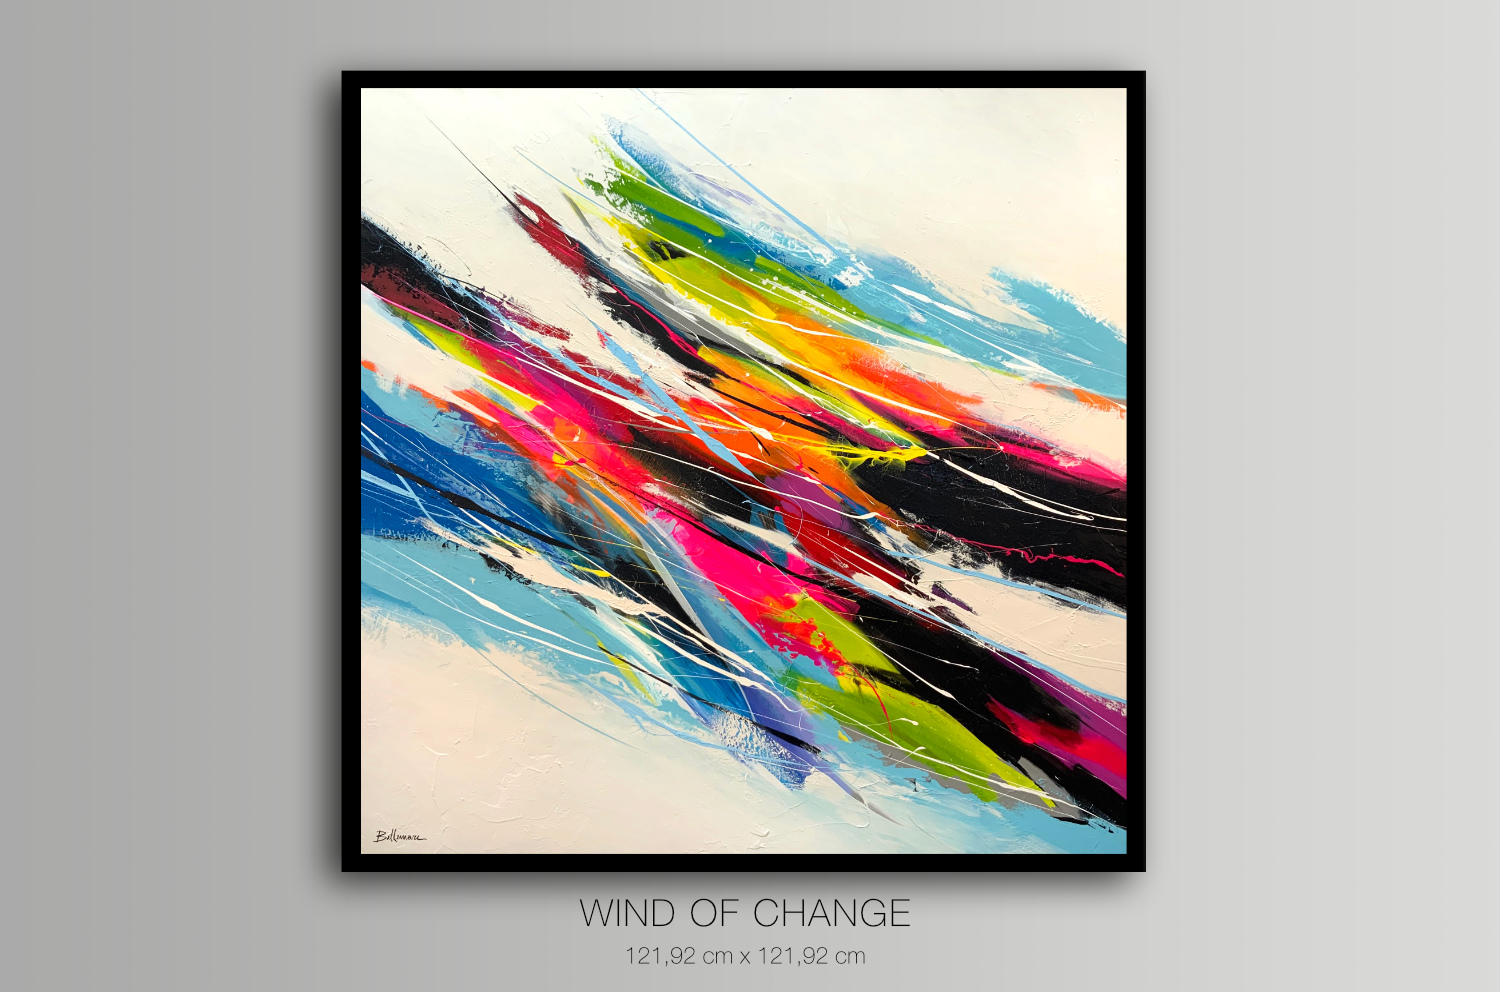 Wind of Change - Featured